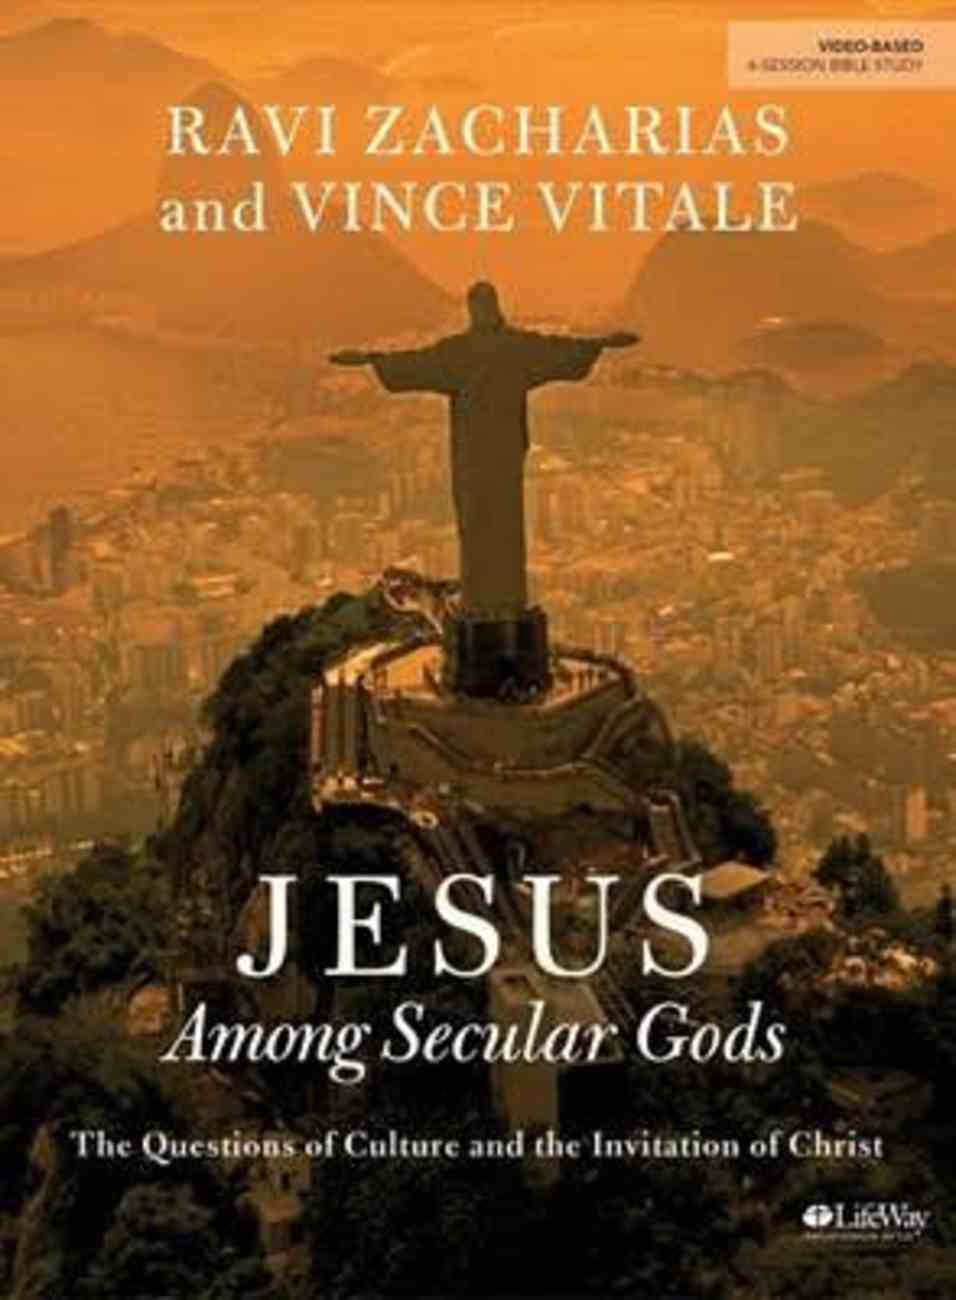 Jesus Among Secular Gods (2 Dvds) (Dvd Only Set) DVD